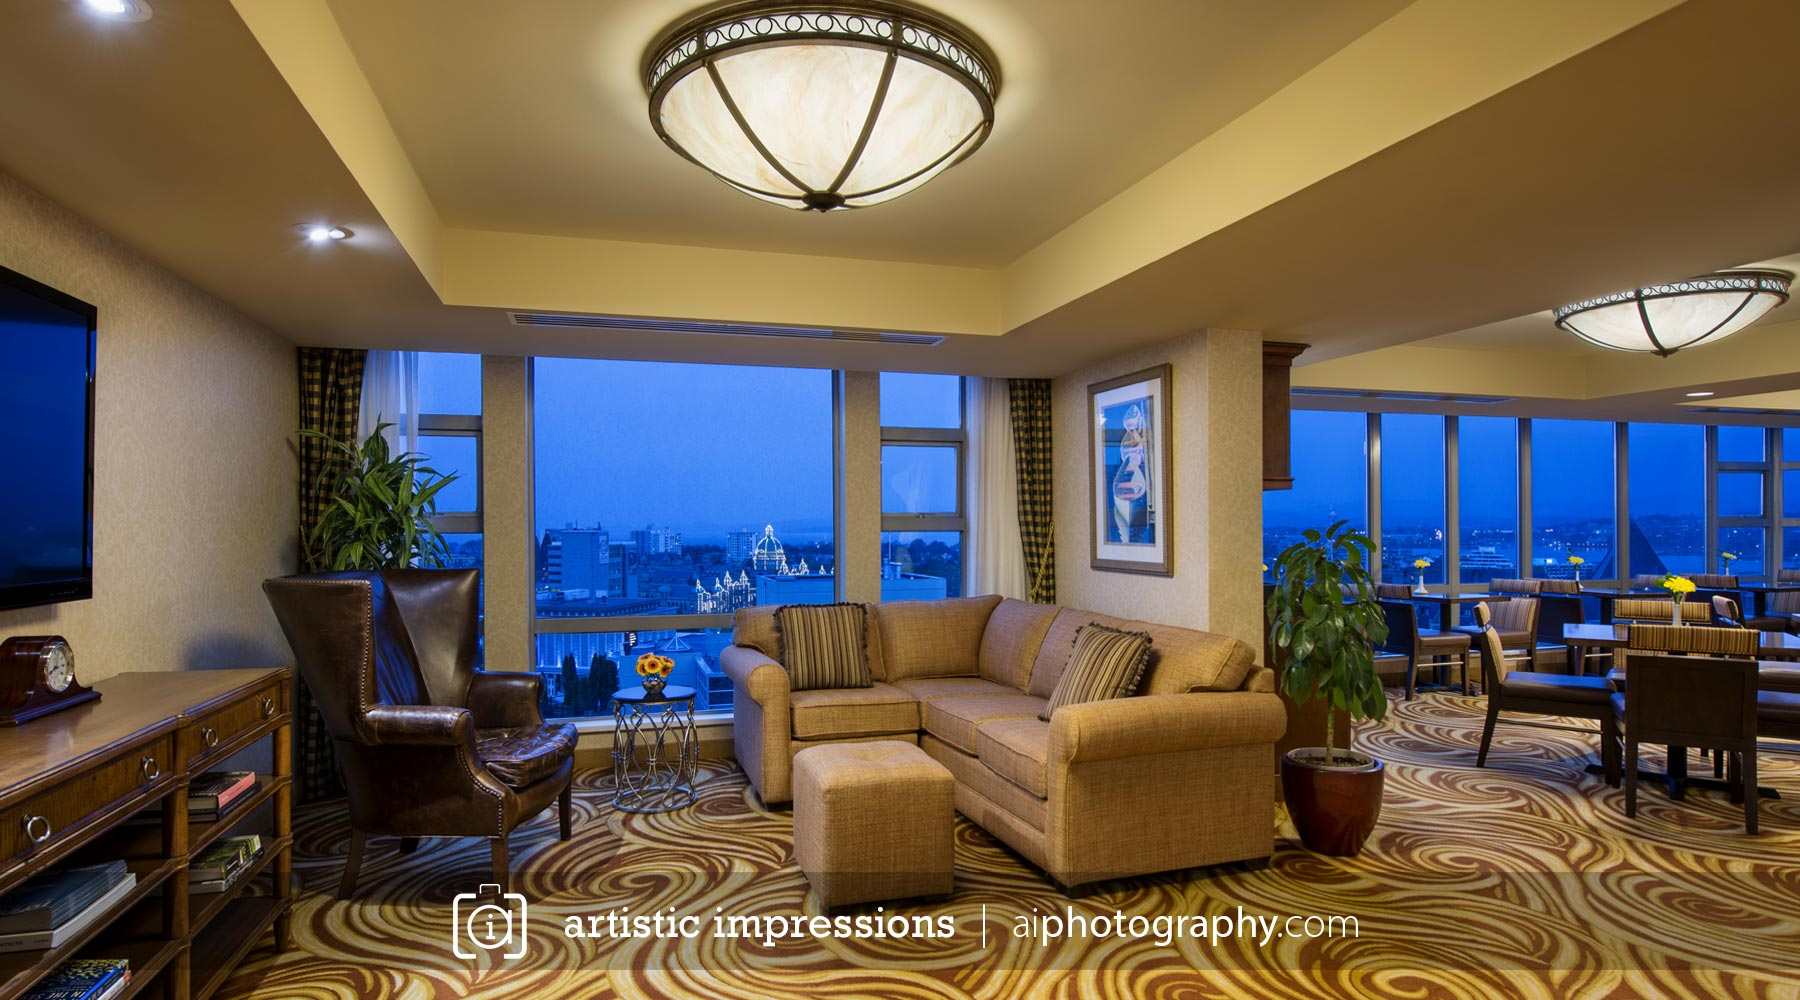 A Commercial Interior Hotel Hospitality Photographer